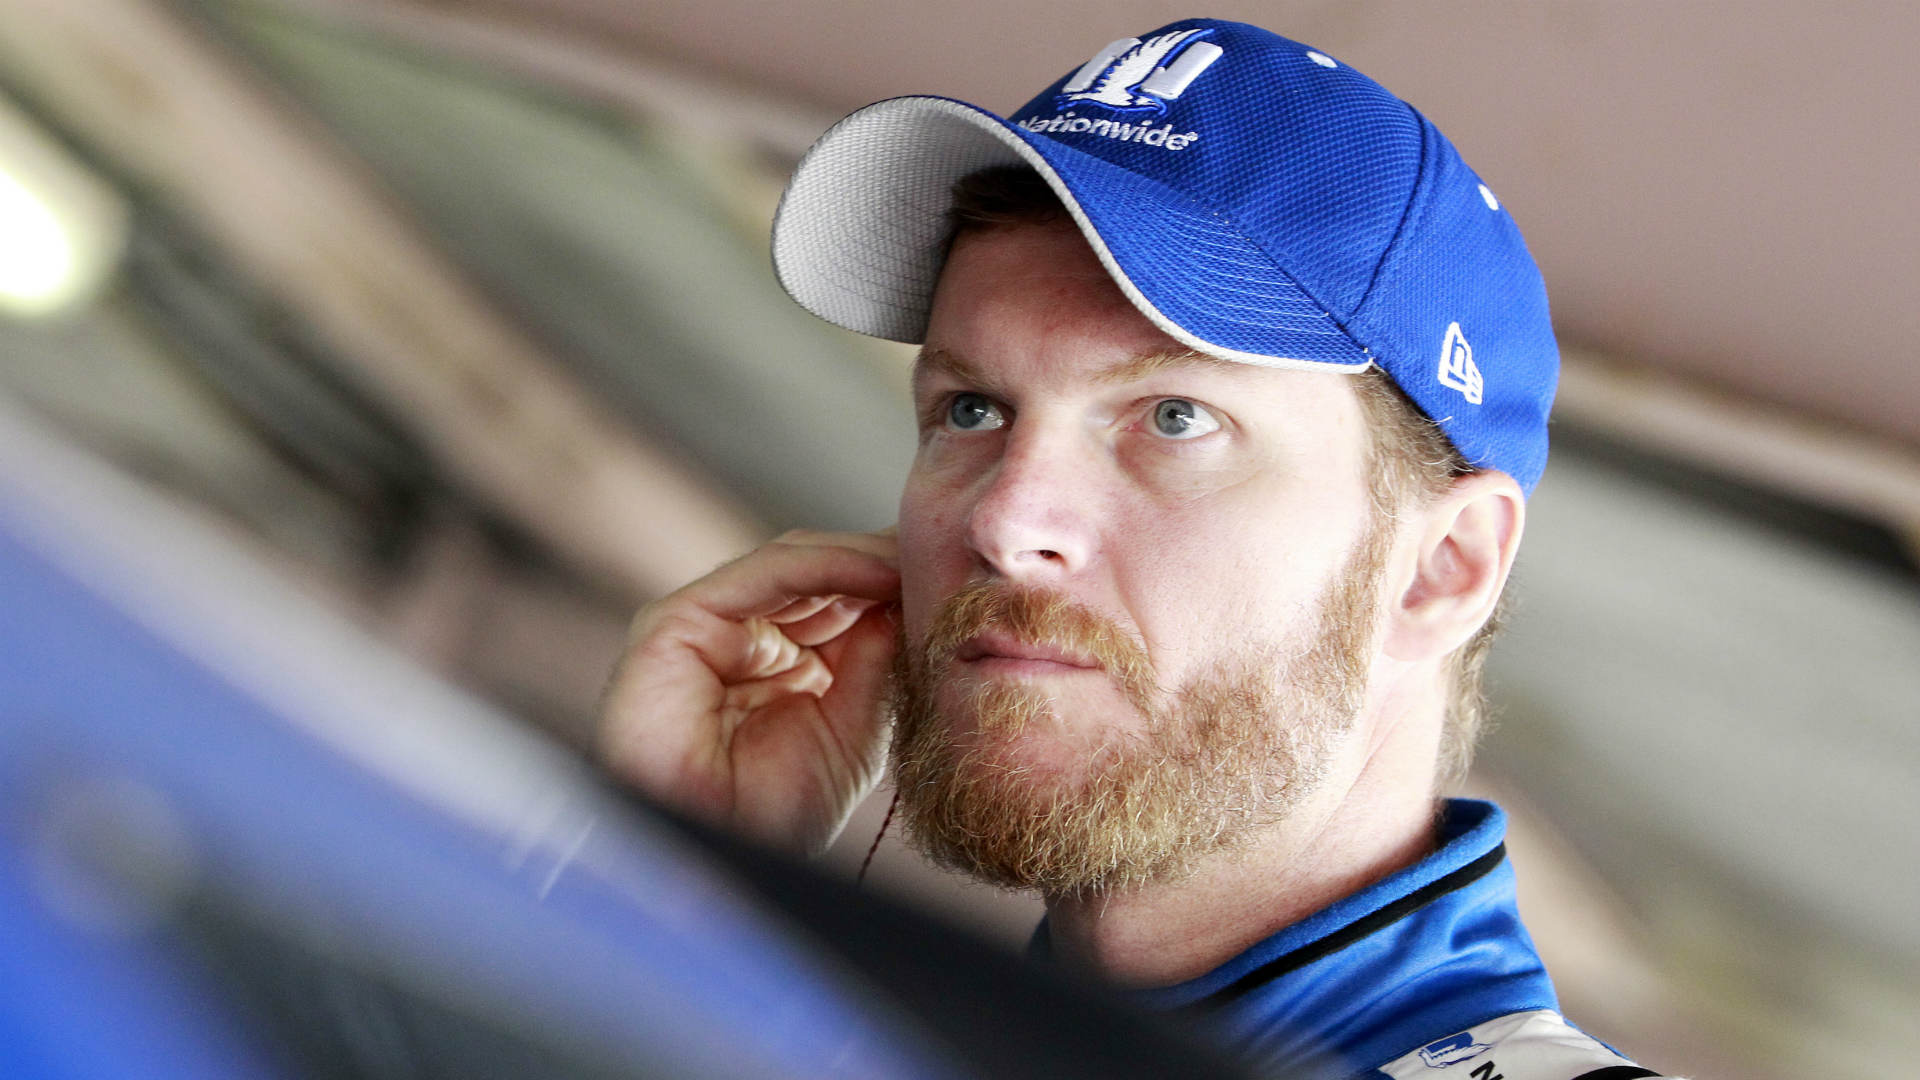 Earnhardt-Dale-05312015-US-News-Getty-FTR